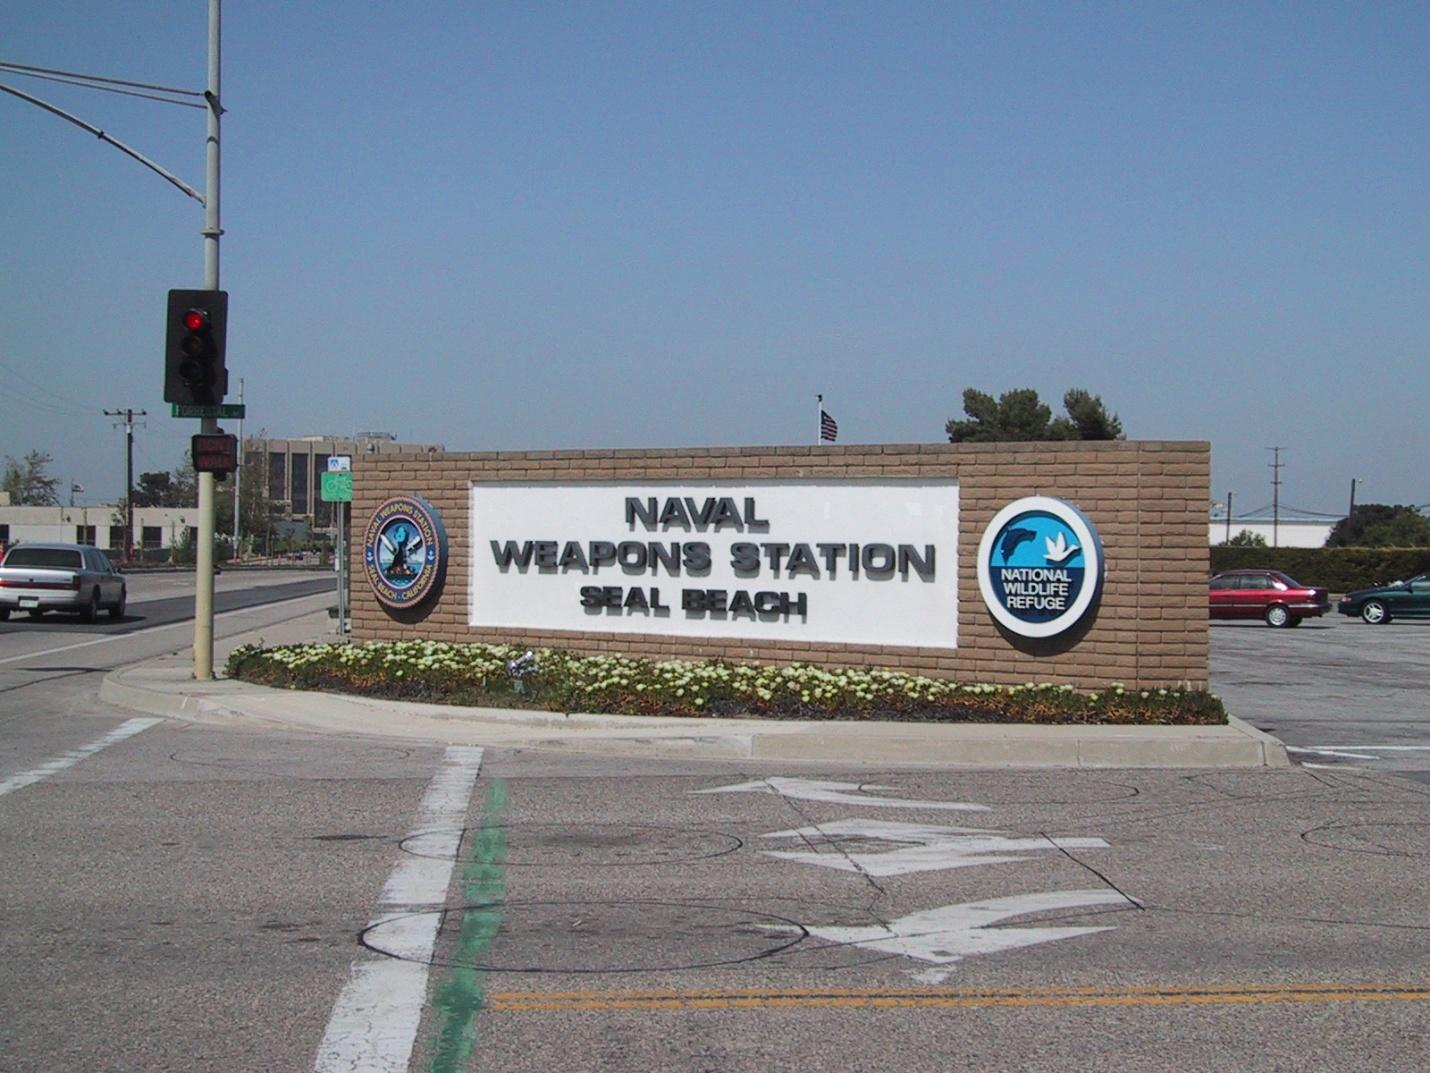 NWS Seal Beach Navy Base In Seal Beach CA Complete Info - Map of us army bases in virginia